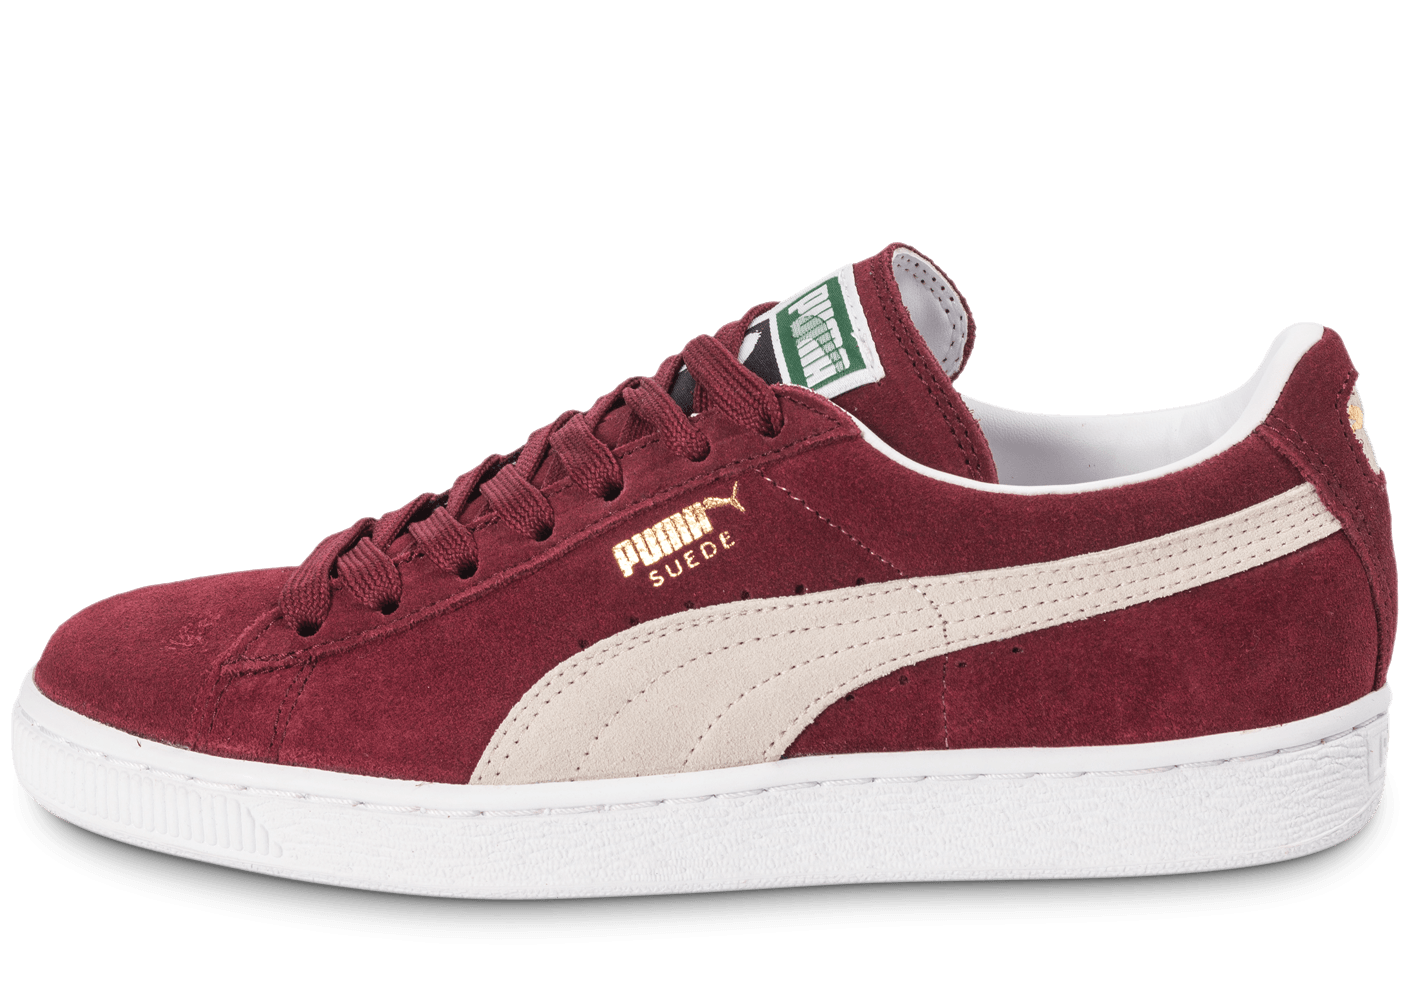 Suede Chaussure Puma Rouge Taille Classic Femme 38 QdthsxrCB